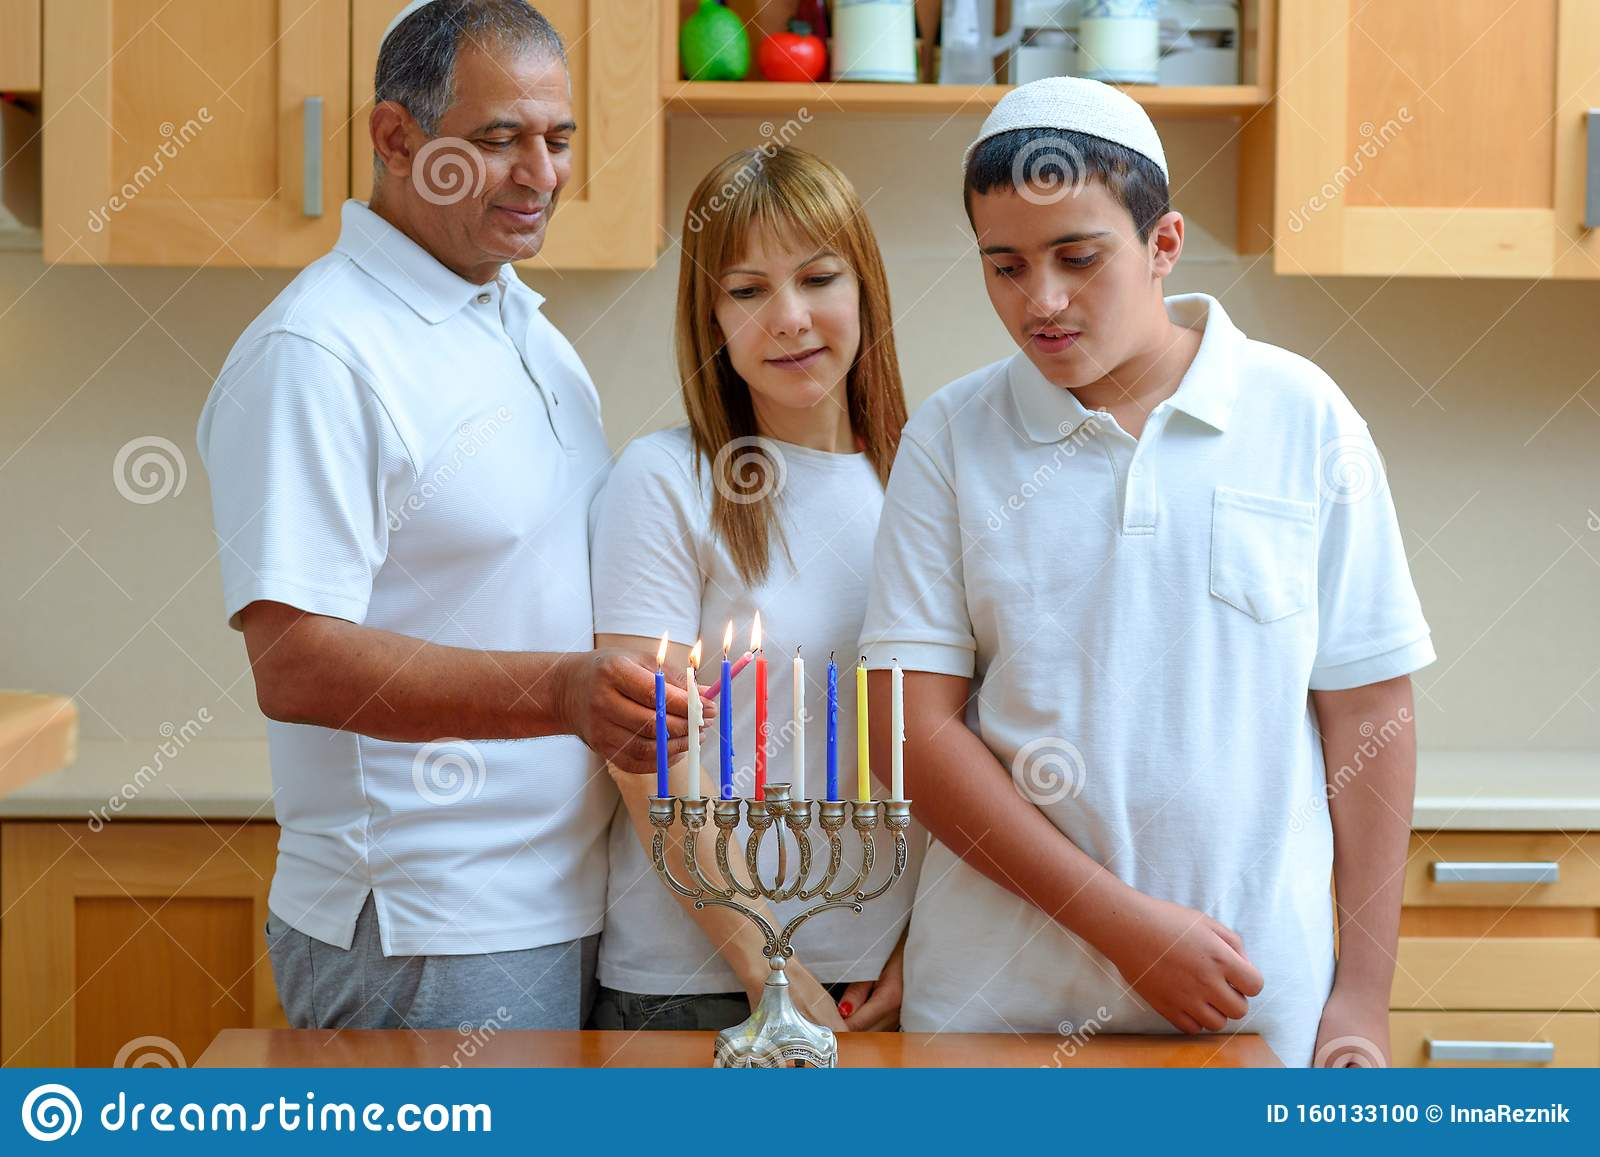 Jewish Dad, Mom and teenager son lighting Chanukkah Candles in a menorah for holidays